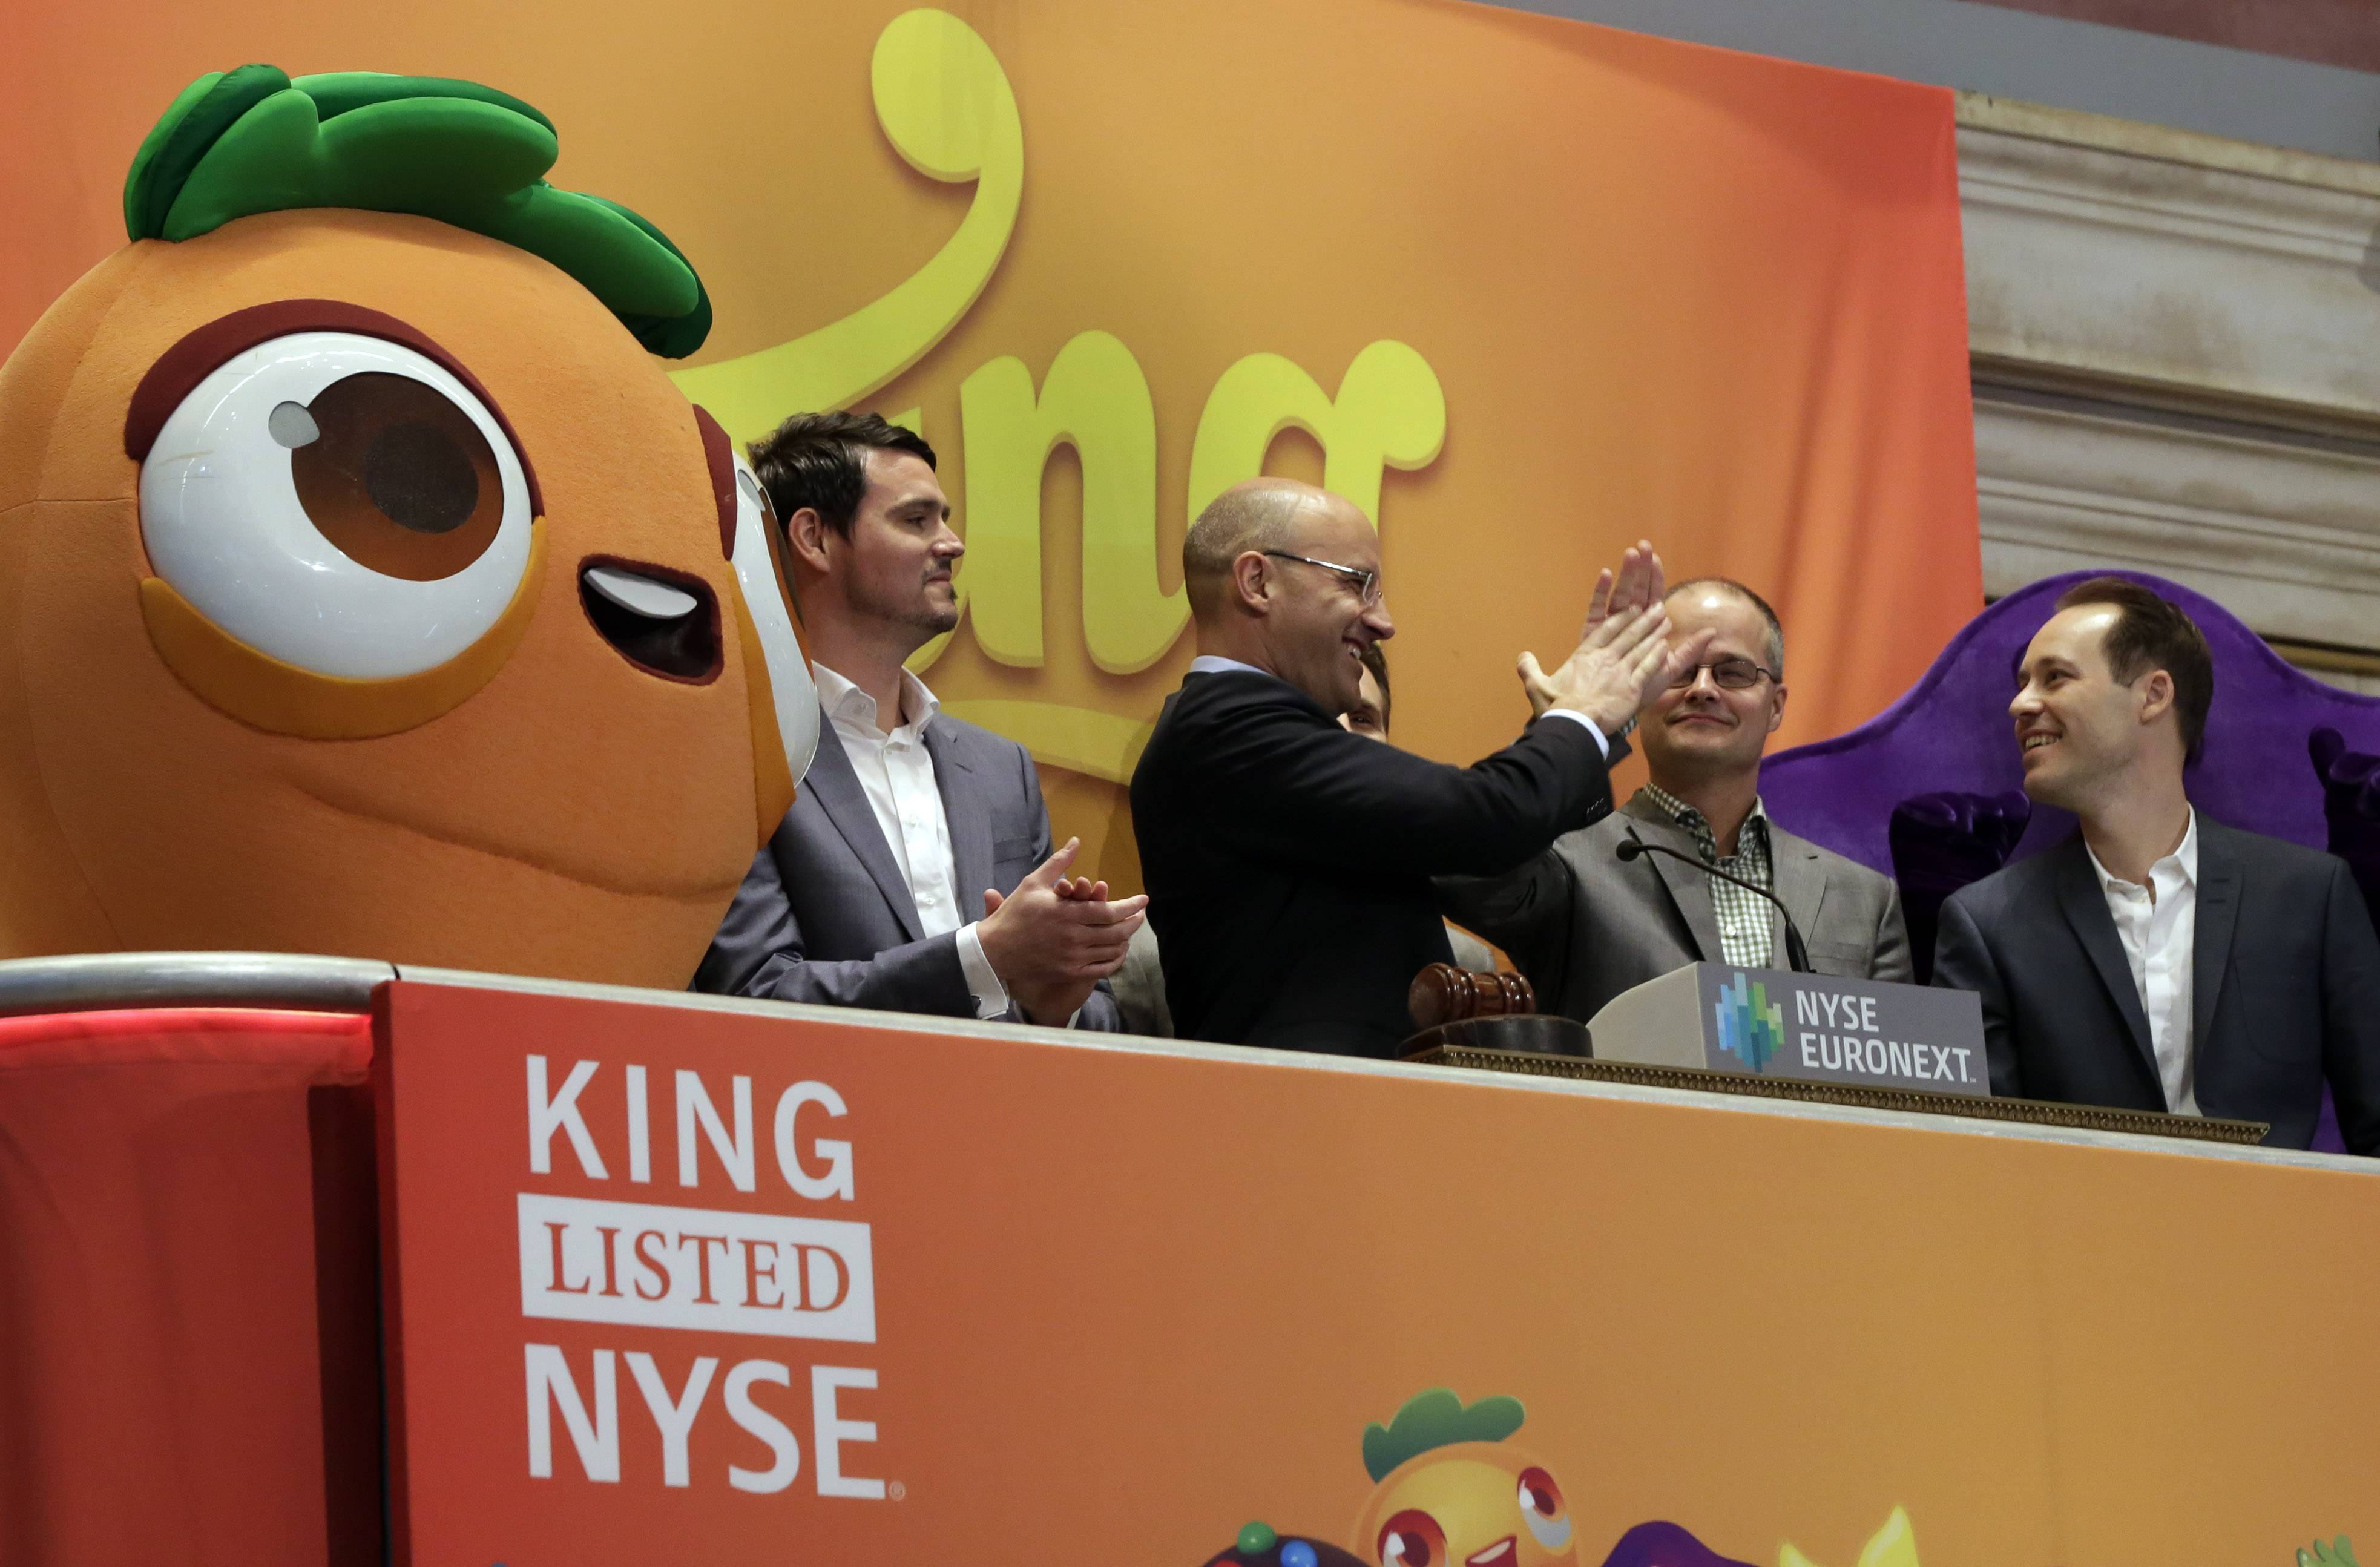 King Digital Entertainment CEO and founder Riccardo Zacconio second left, high-fives with company co-founder Lars markgren, the maker of Candy Crush Saga and Farm Heroes Saga, during opening bell ceremonies at the New York Stock Exchange, before King Digital's IPO, Wednesday. The company flopped in its market debut.